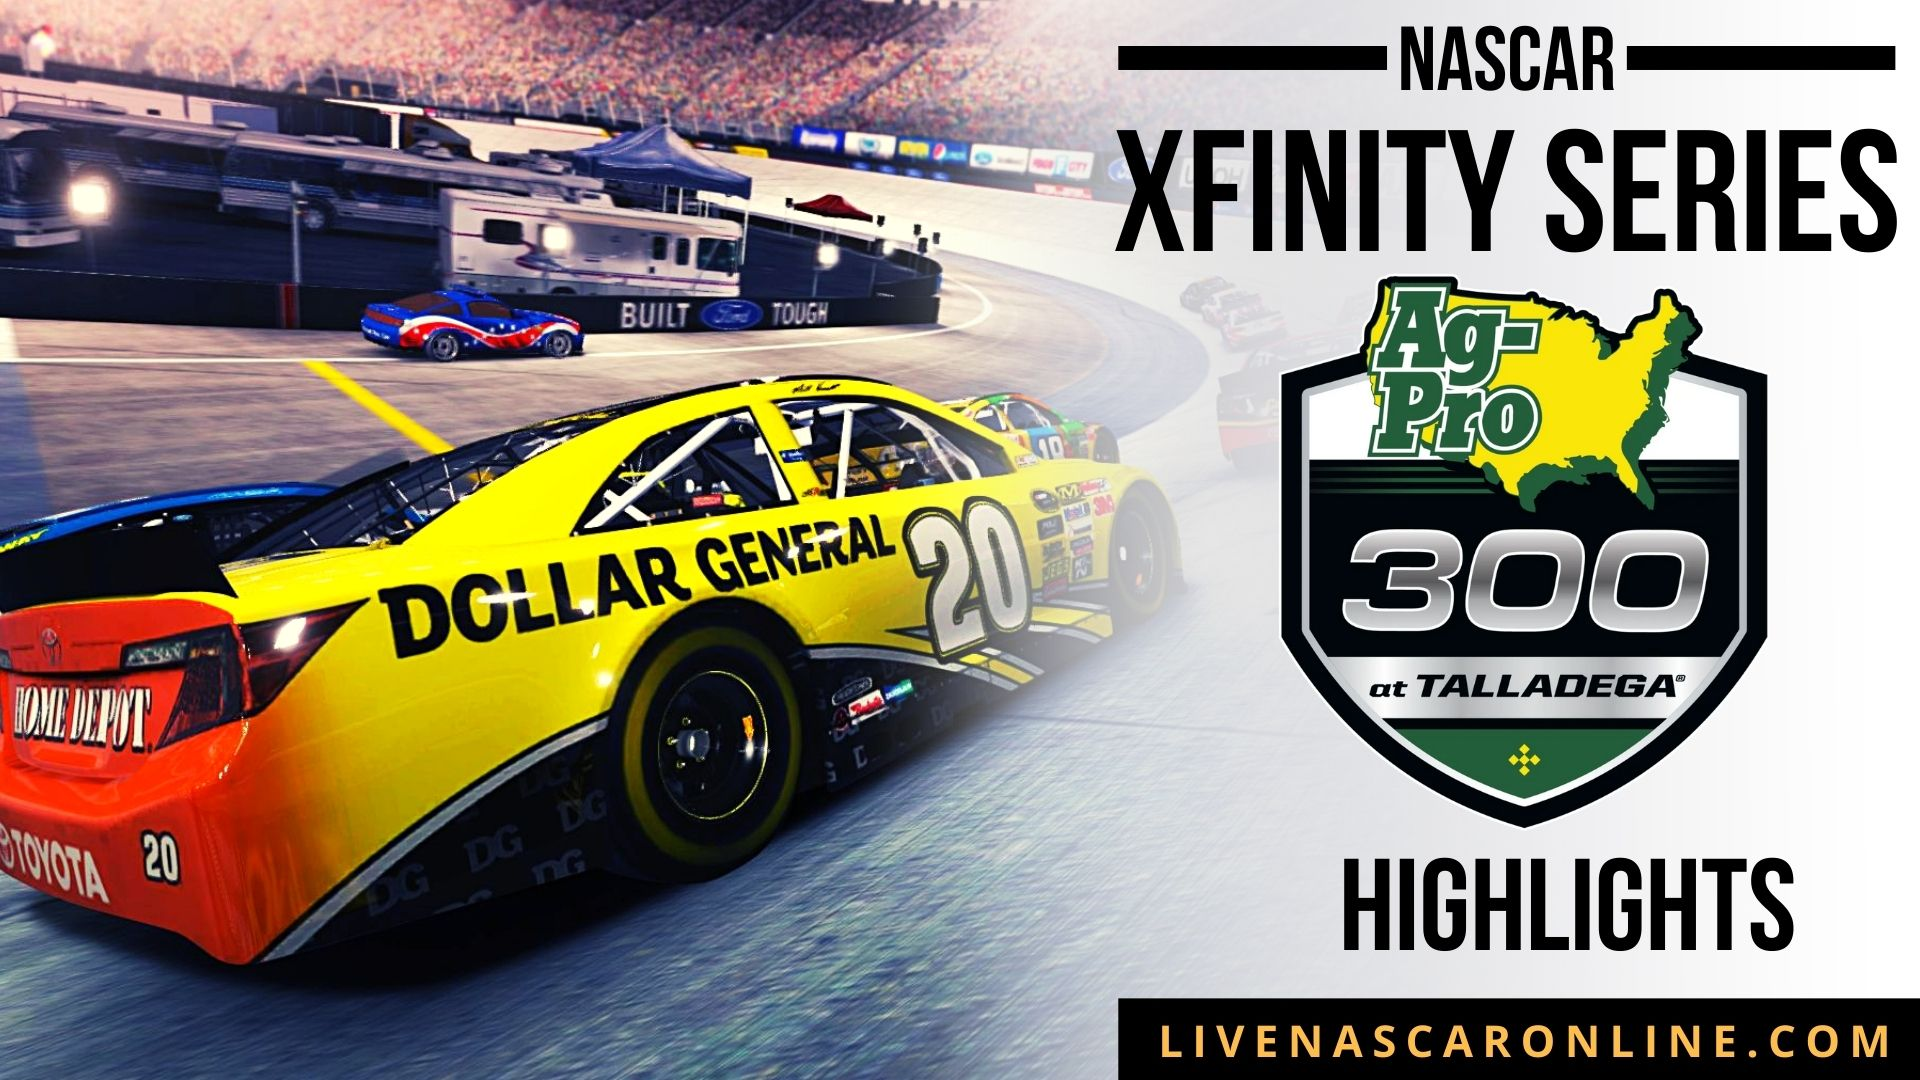 Ag Pro 300 Highlights 2021 Nascar Xfinity Series